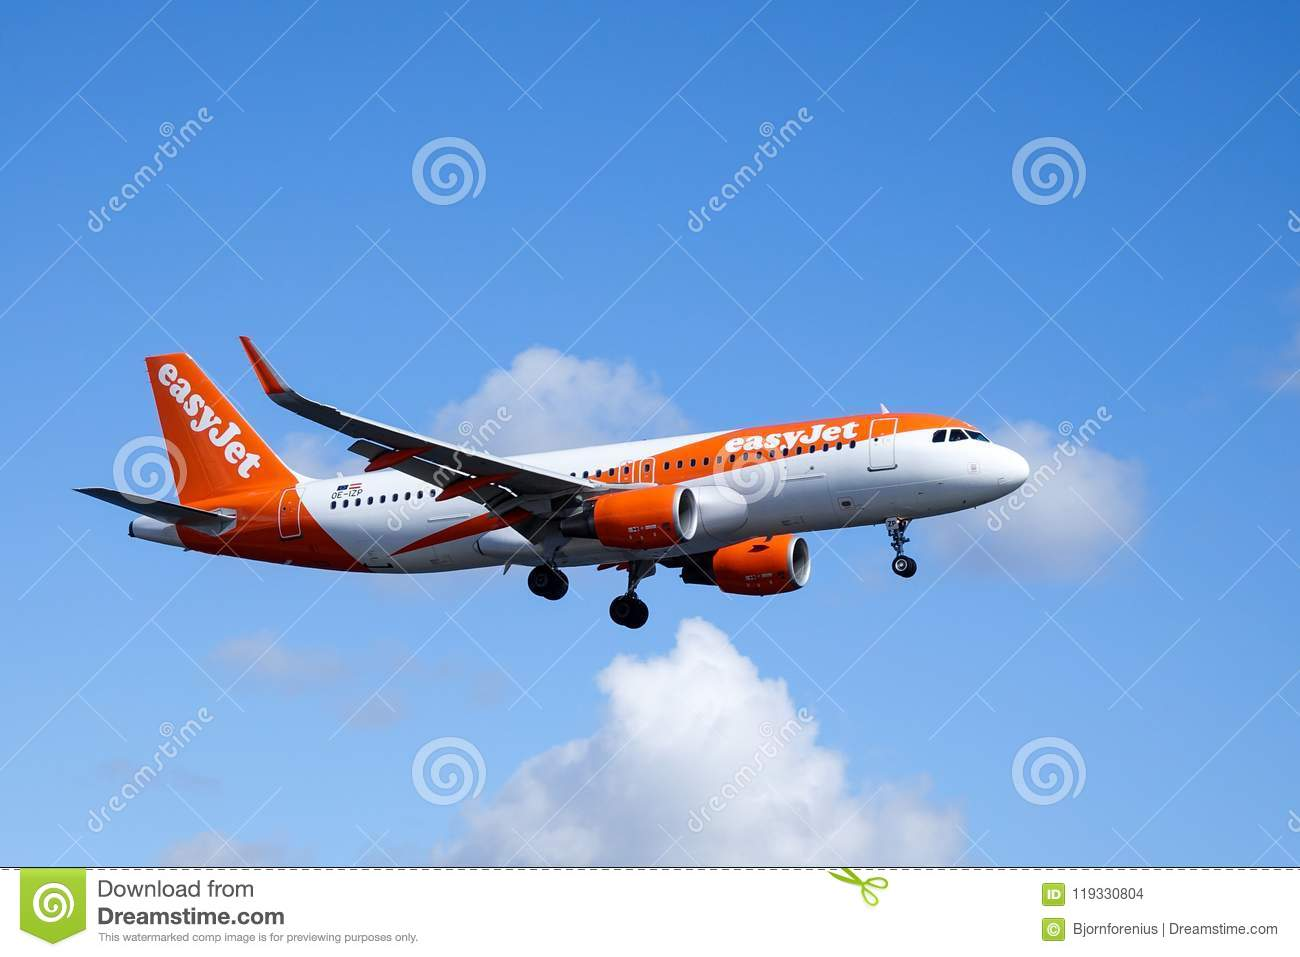 Easyjet, Airbus A320 - 214 flying